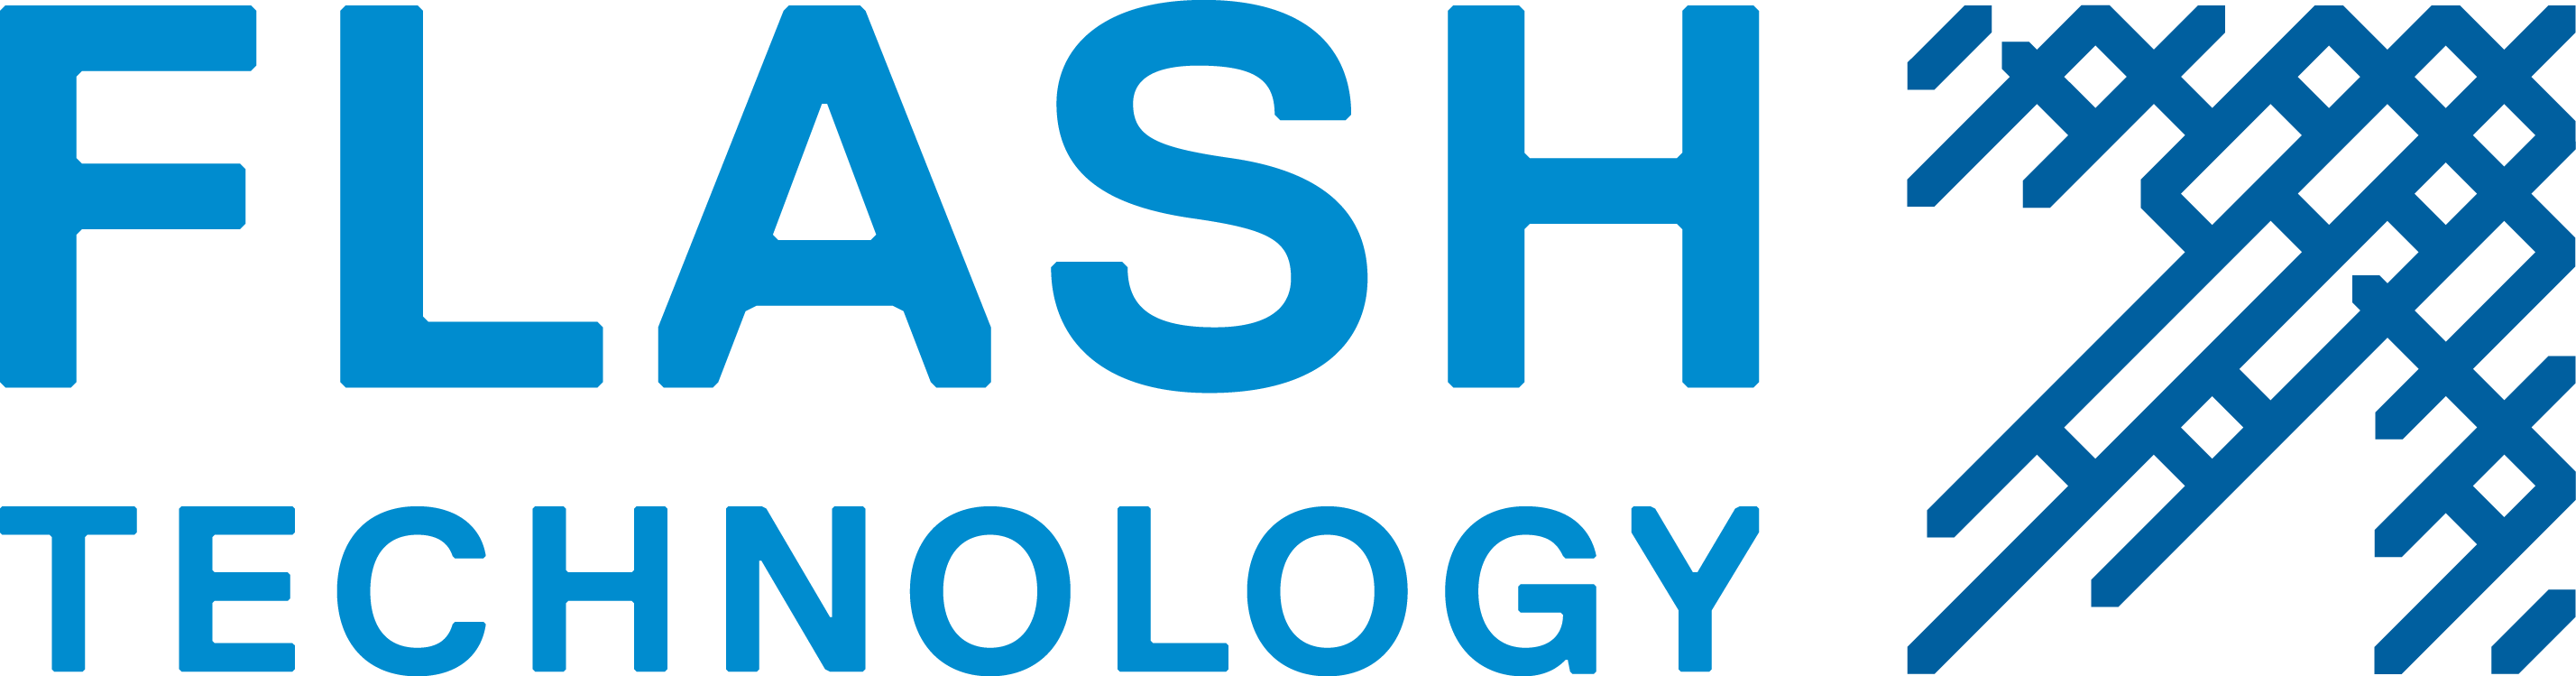 Flash Technology Tower Lighting Products